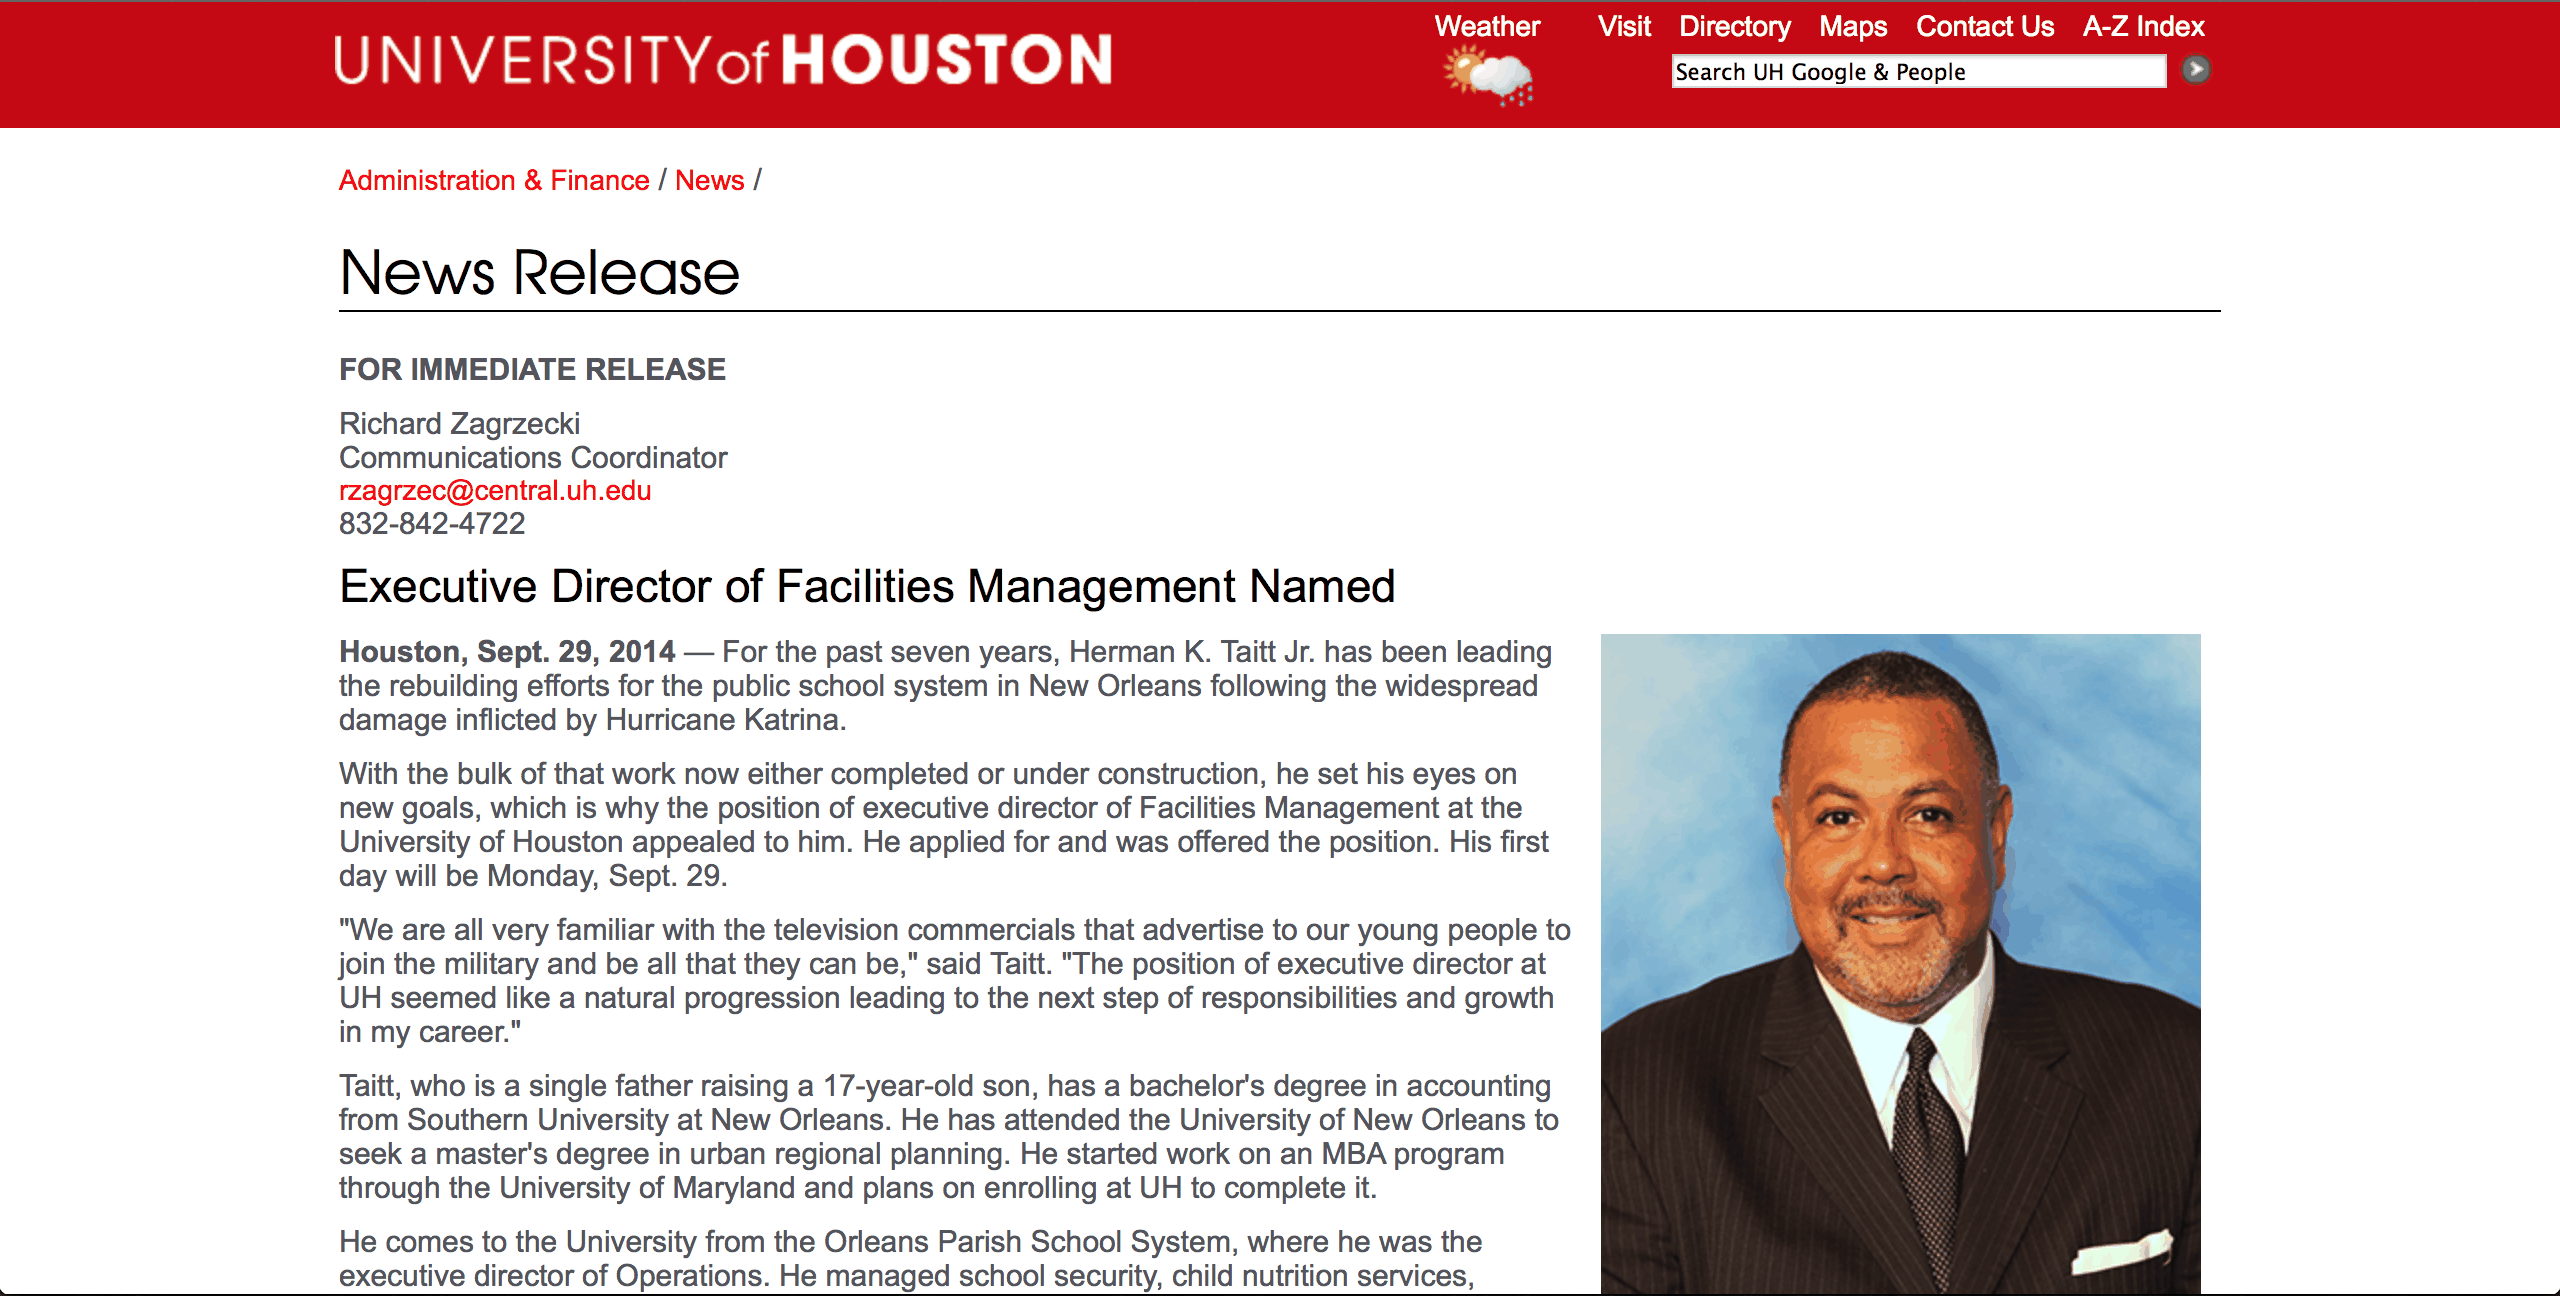 The University of Houston announced Taitt's hiring the same day news broke he was being charged by the Louisiana Board of Ethics.